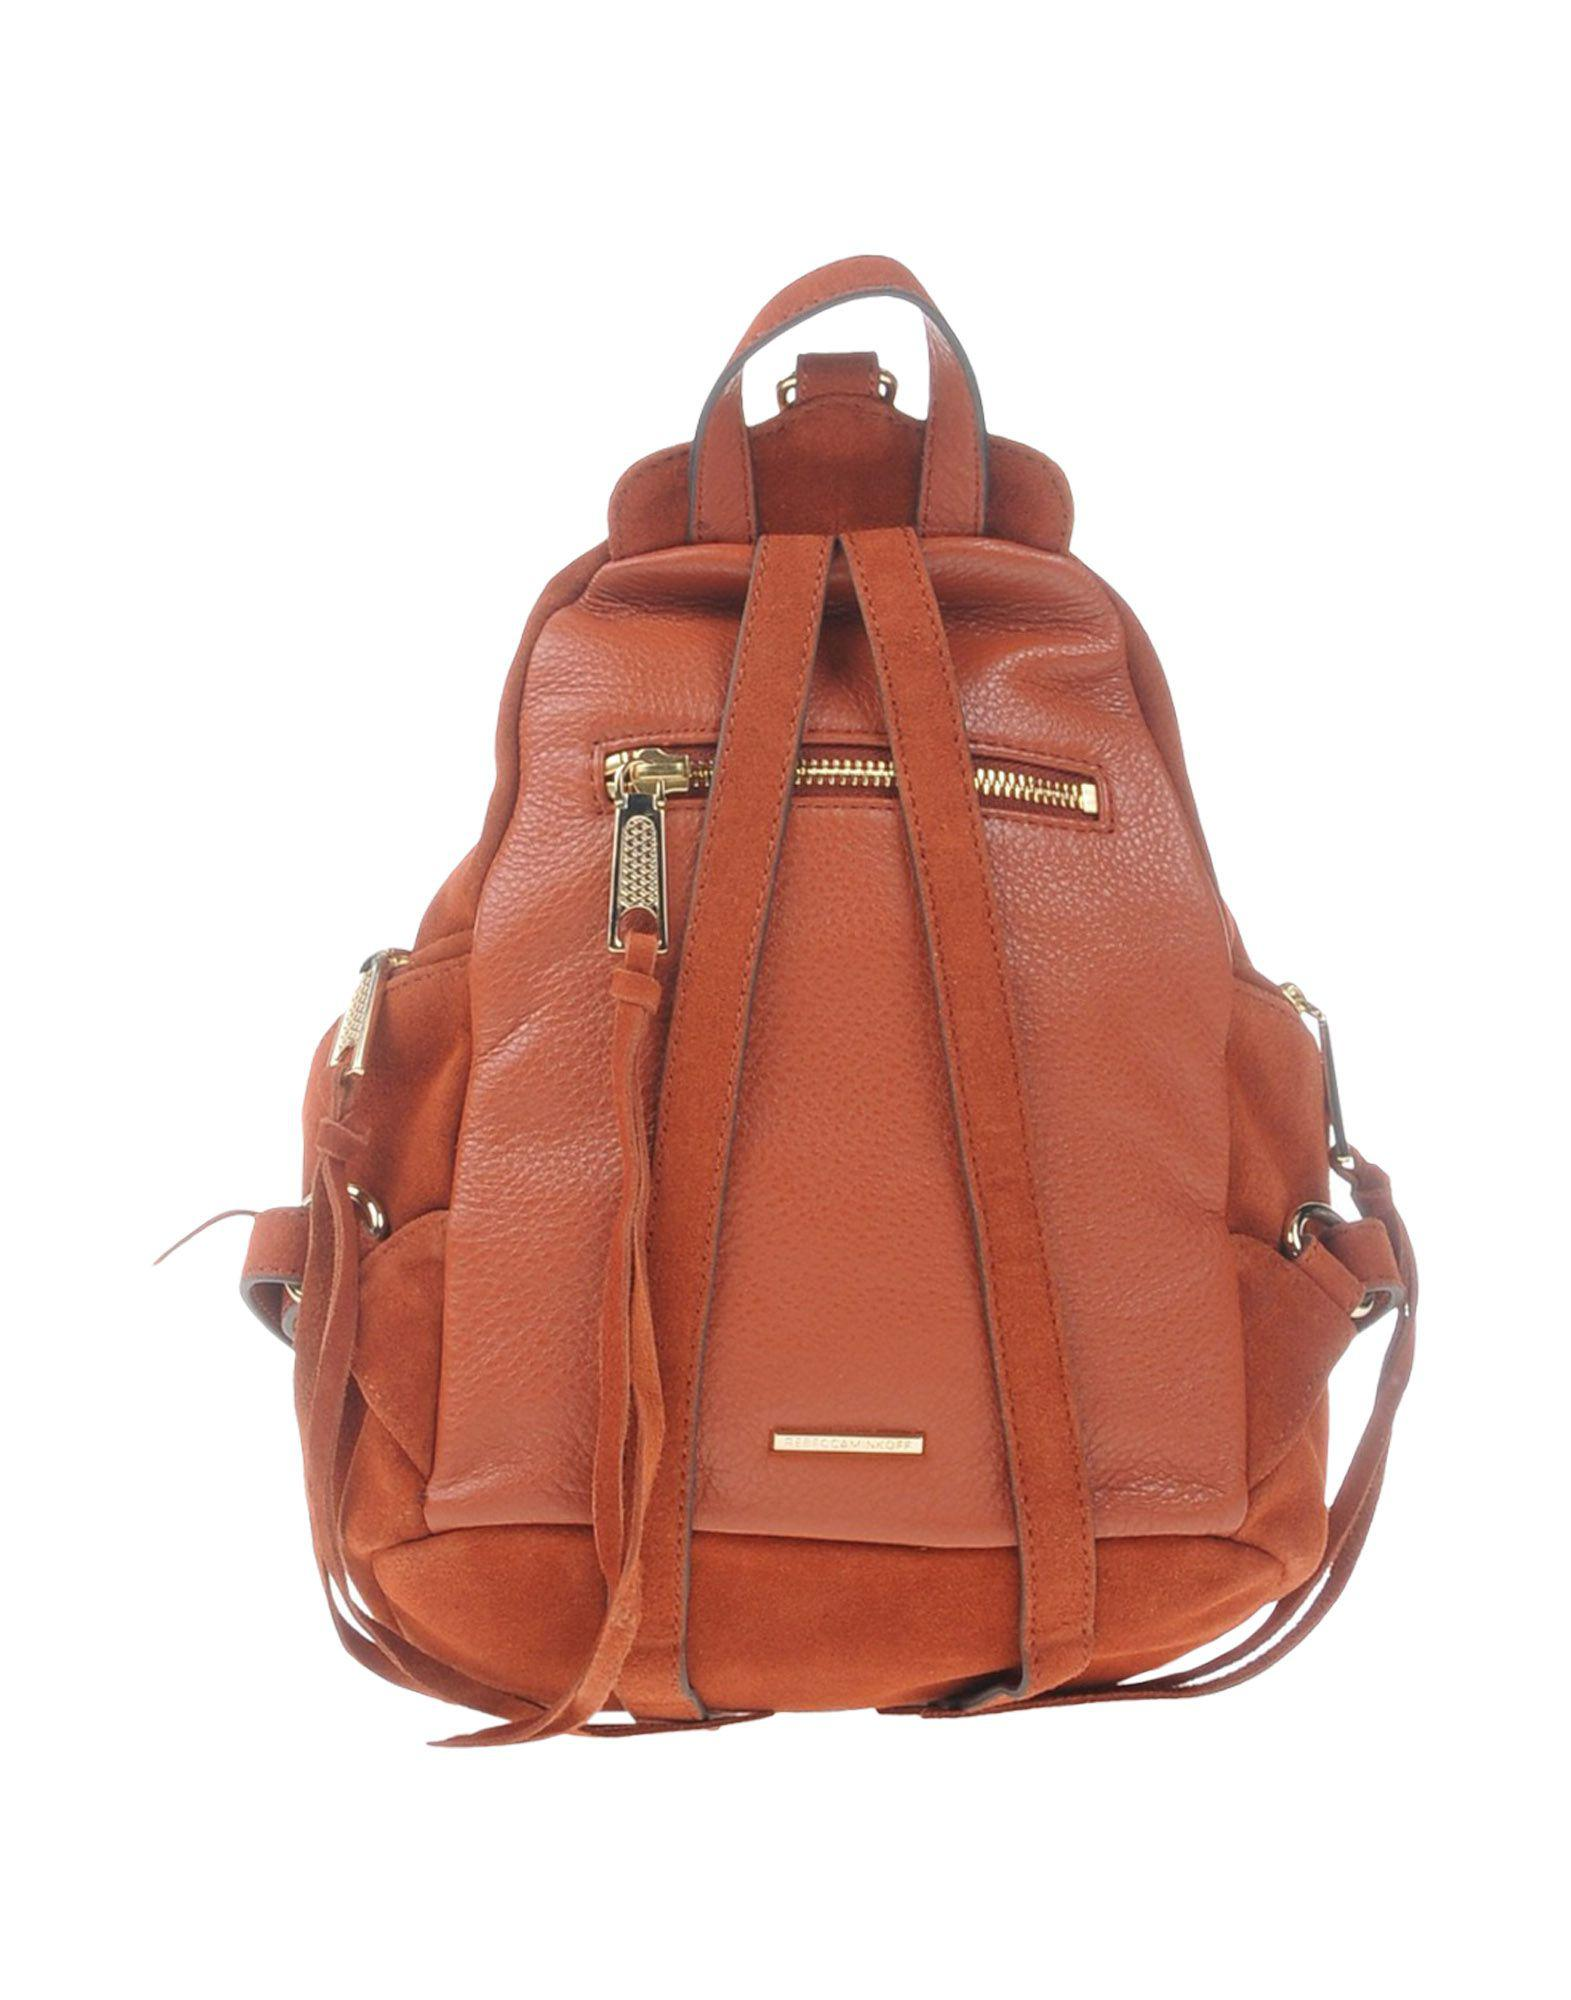 Rebecca Minkoff Leather Backpacks & Fanny Packs in Brick Red (Red)